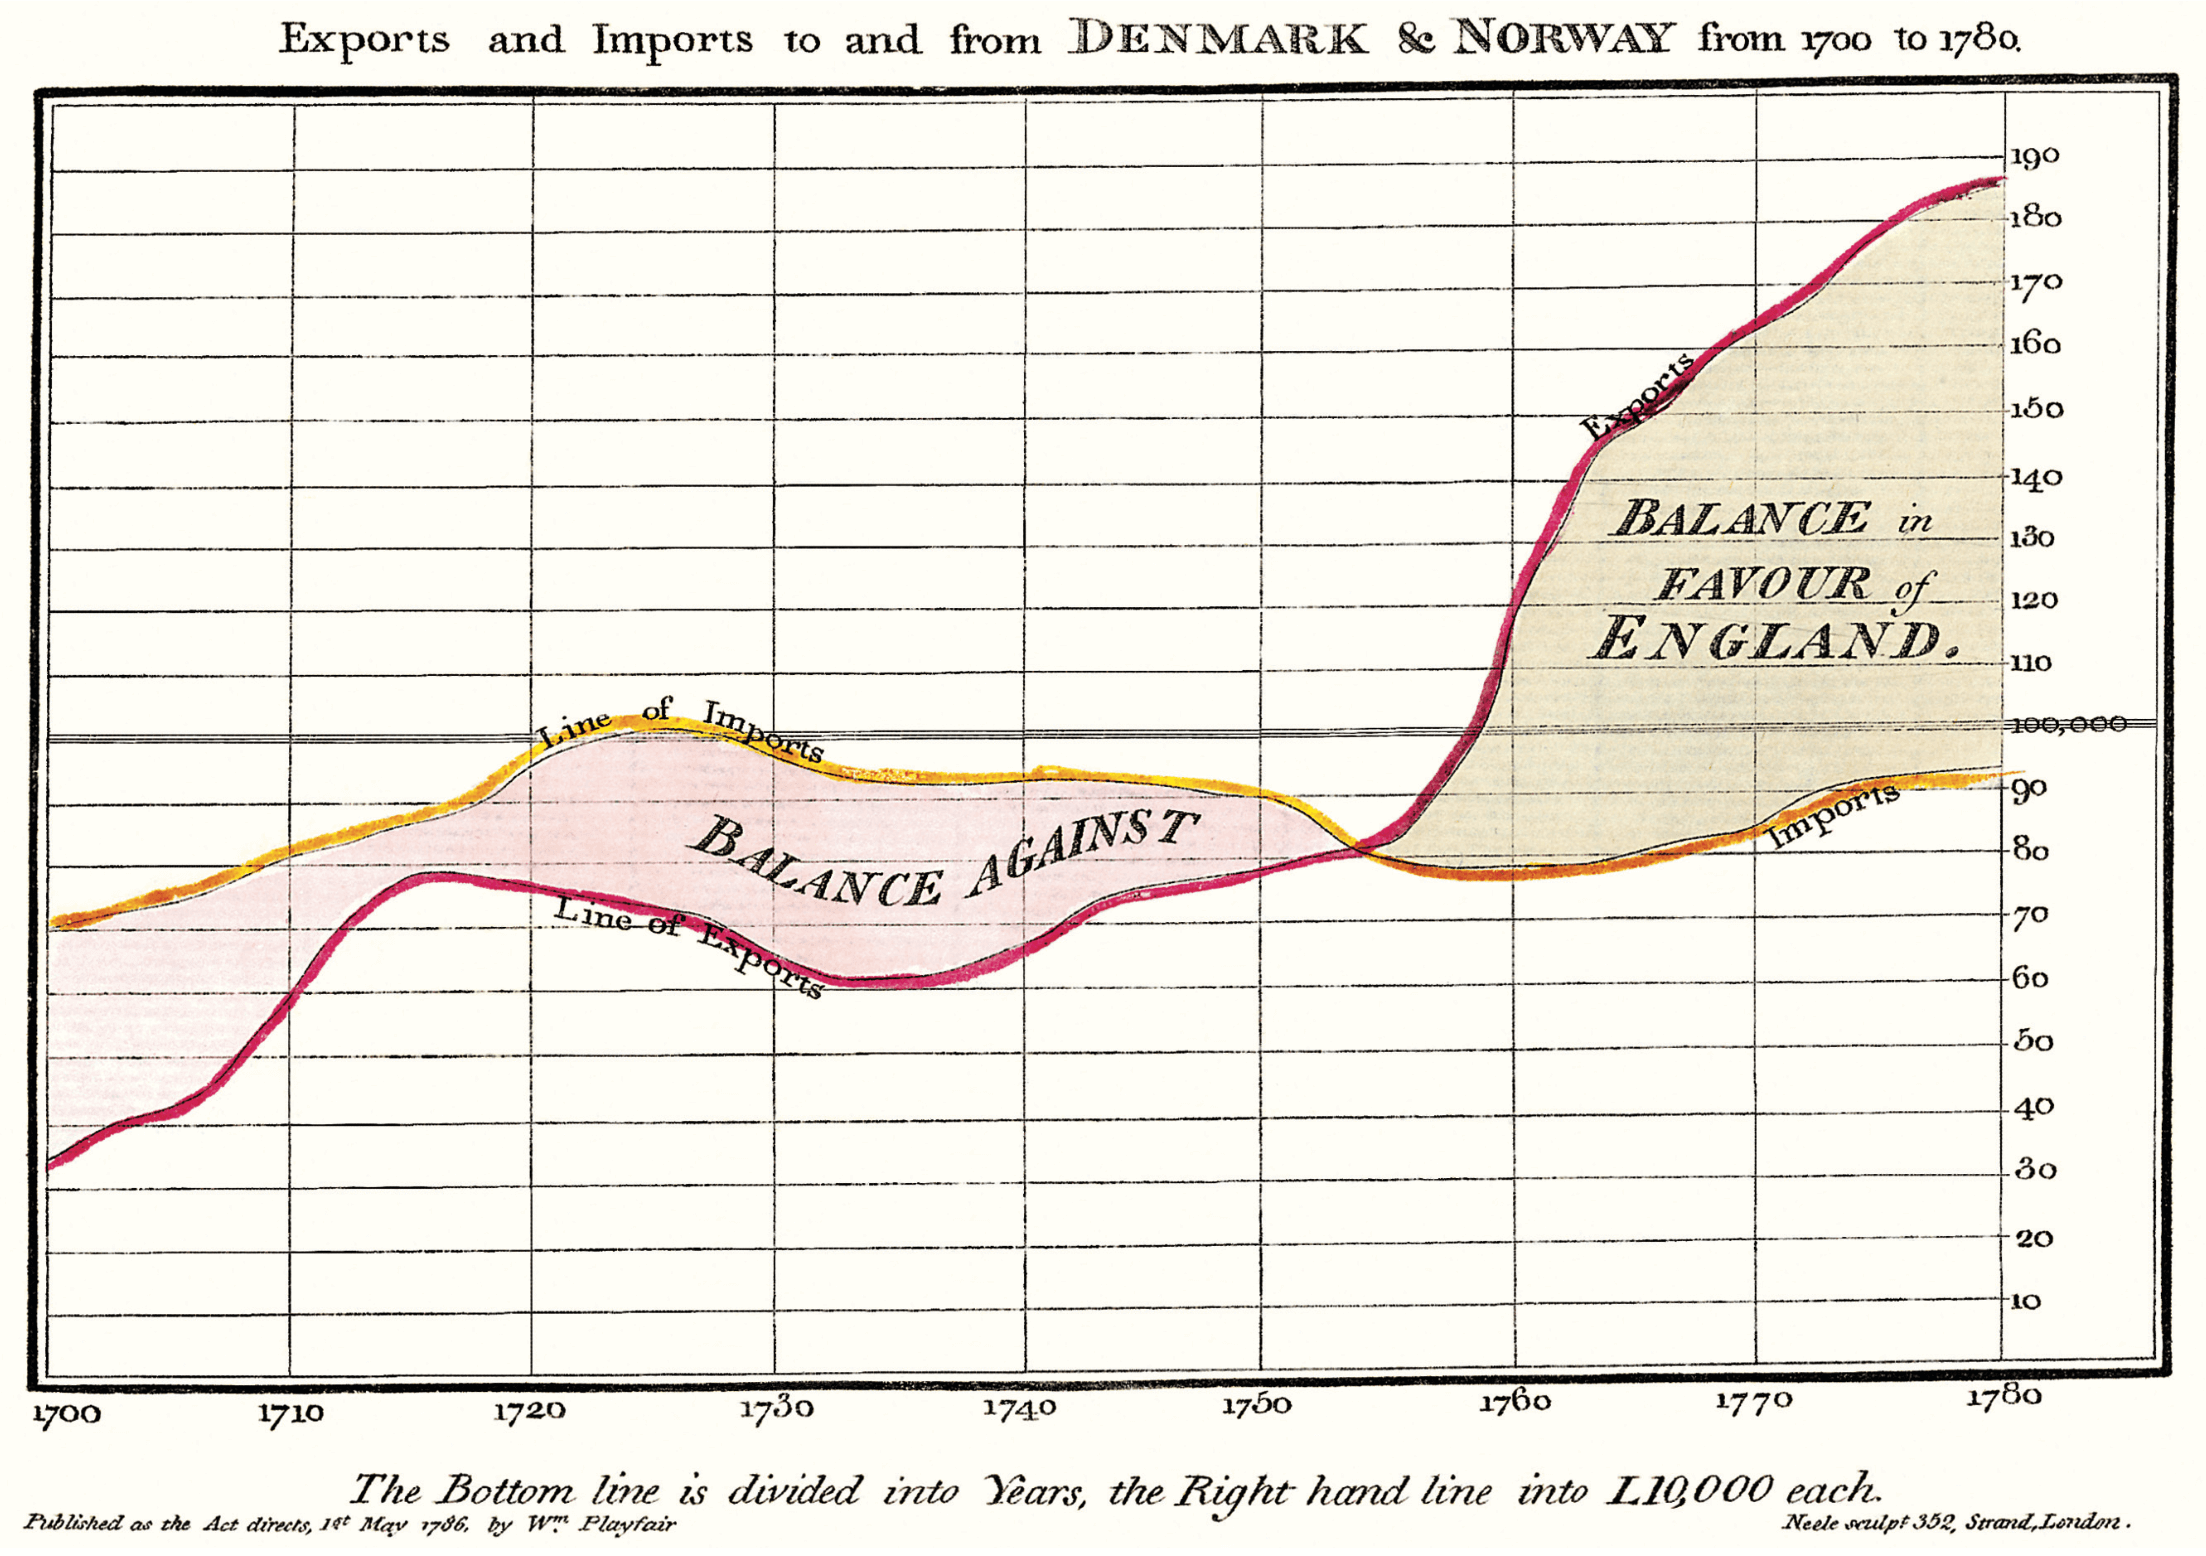 Exports and Imports to and from Denmark & Norway from 1700 to 1780